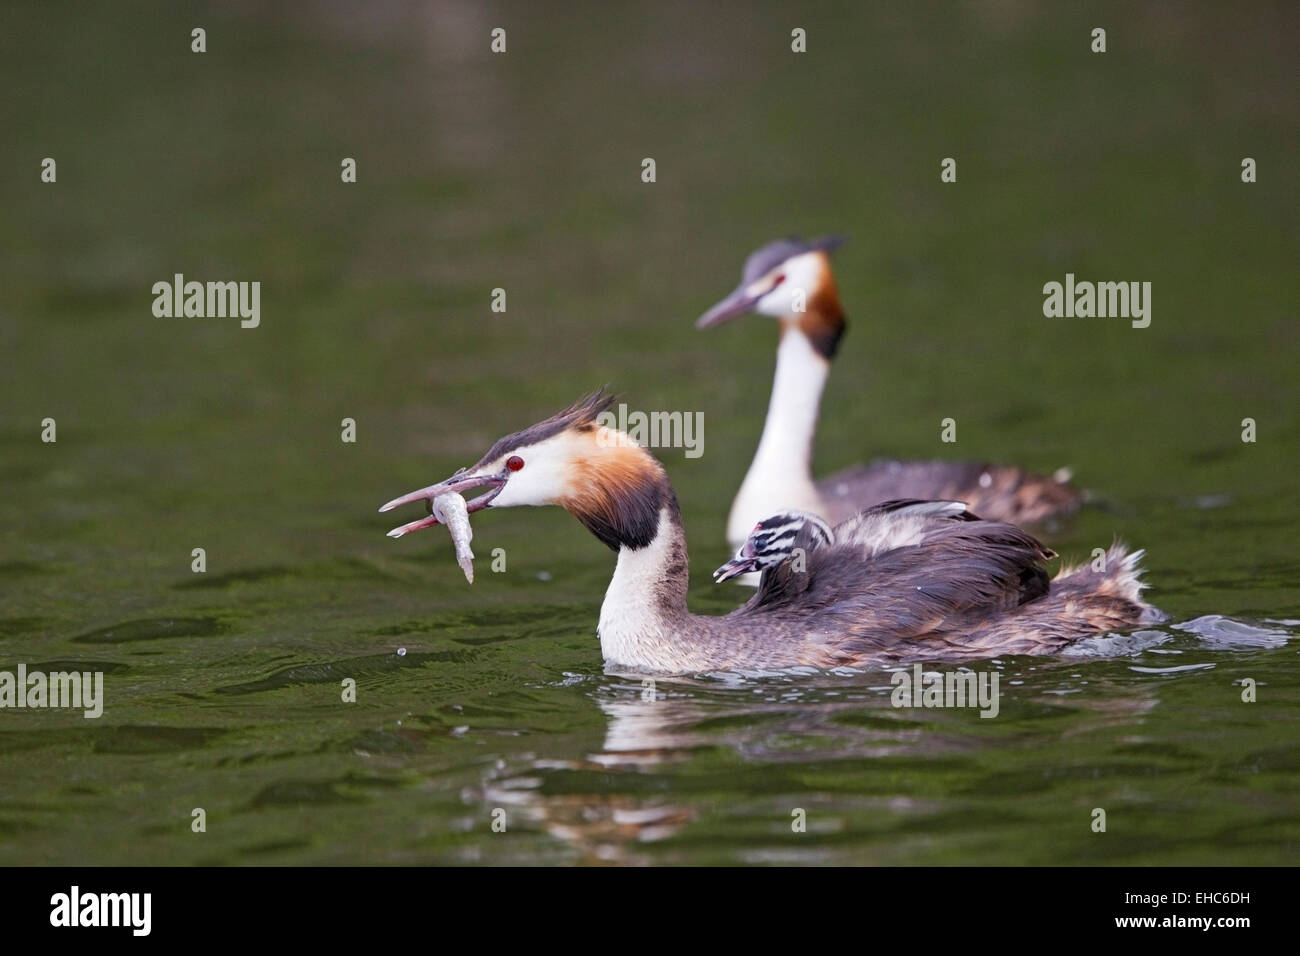 Great Crested Grebe (Podiceps cristatus) adult and chick swimming on water, Norfolk, England, United Kingdom - Stock Image